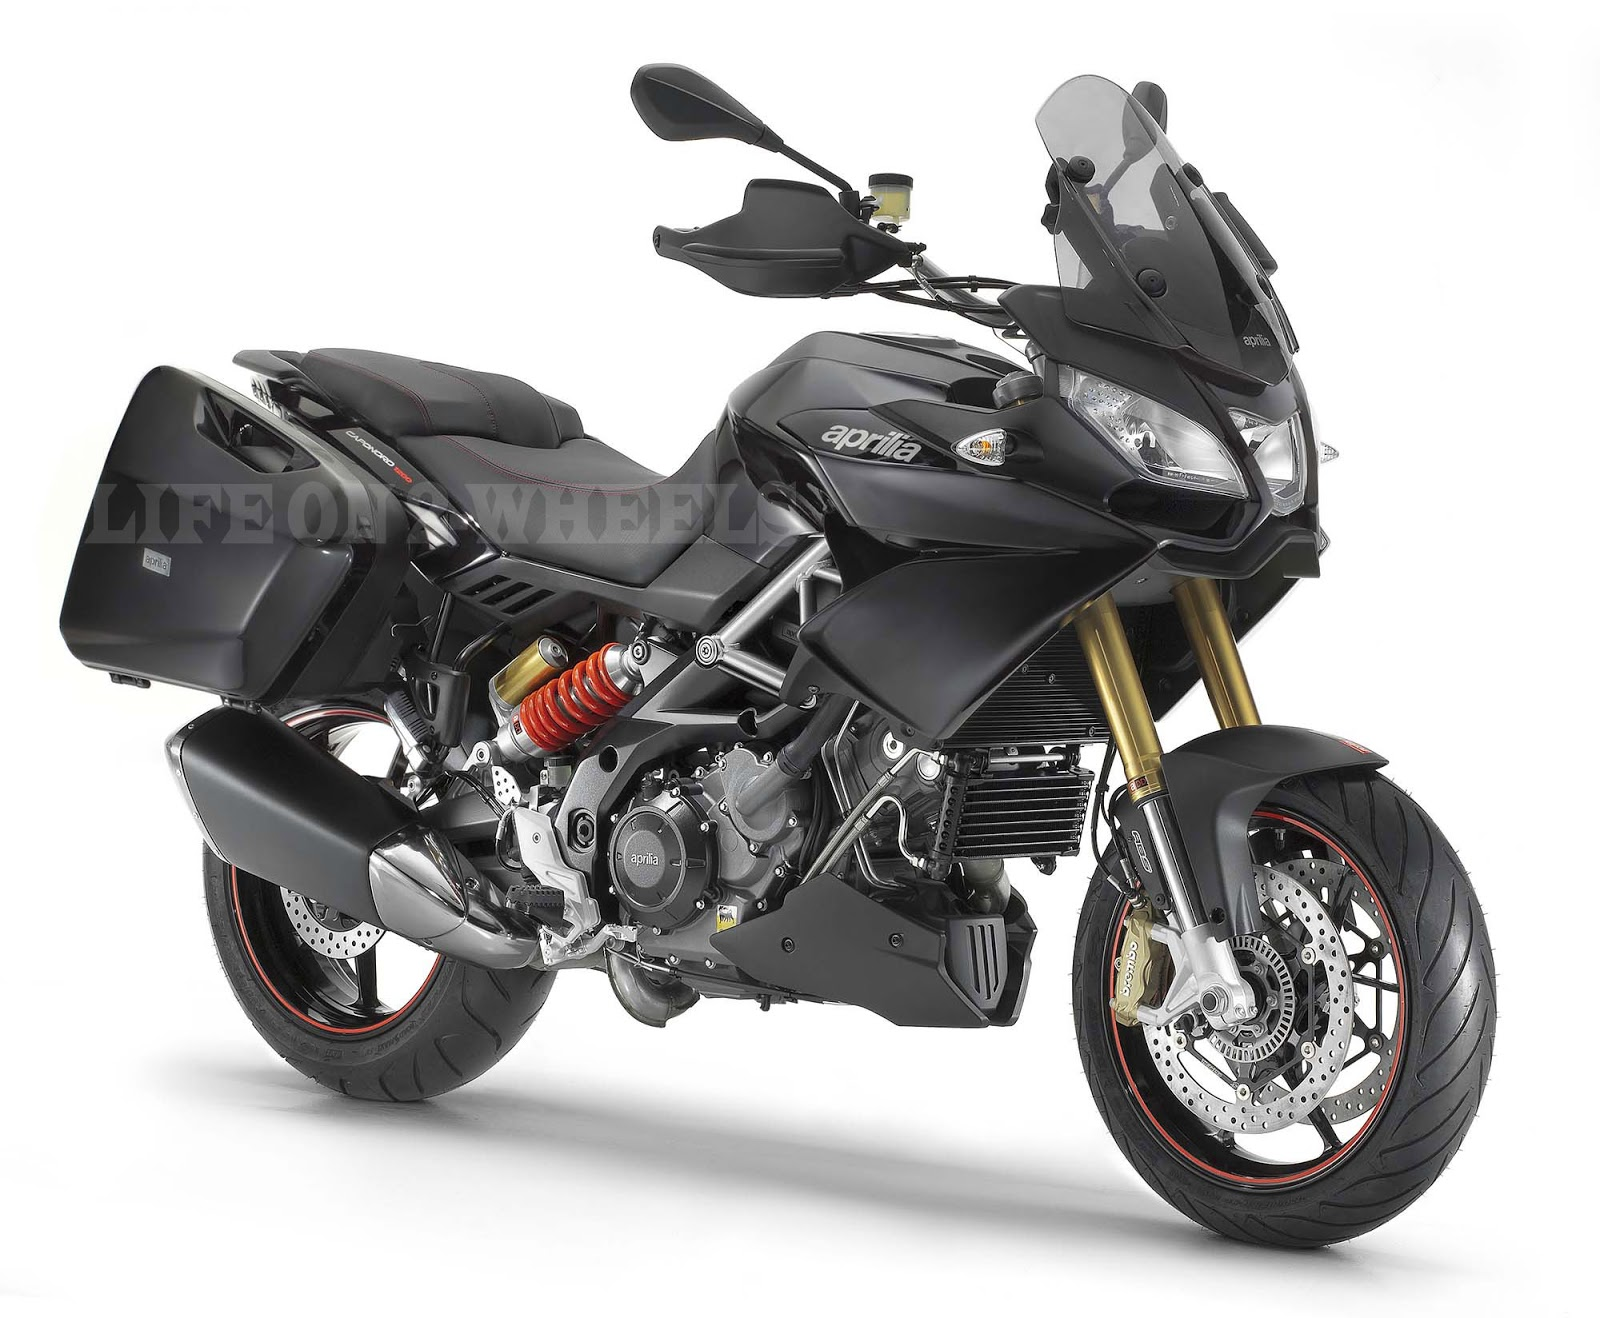 aprilia caponord 1200 comes to india bookings open life on 2 wheels. Black Bedroom Furniture Sets. Home Design Ideas